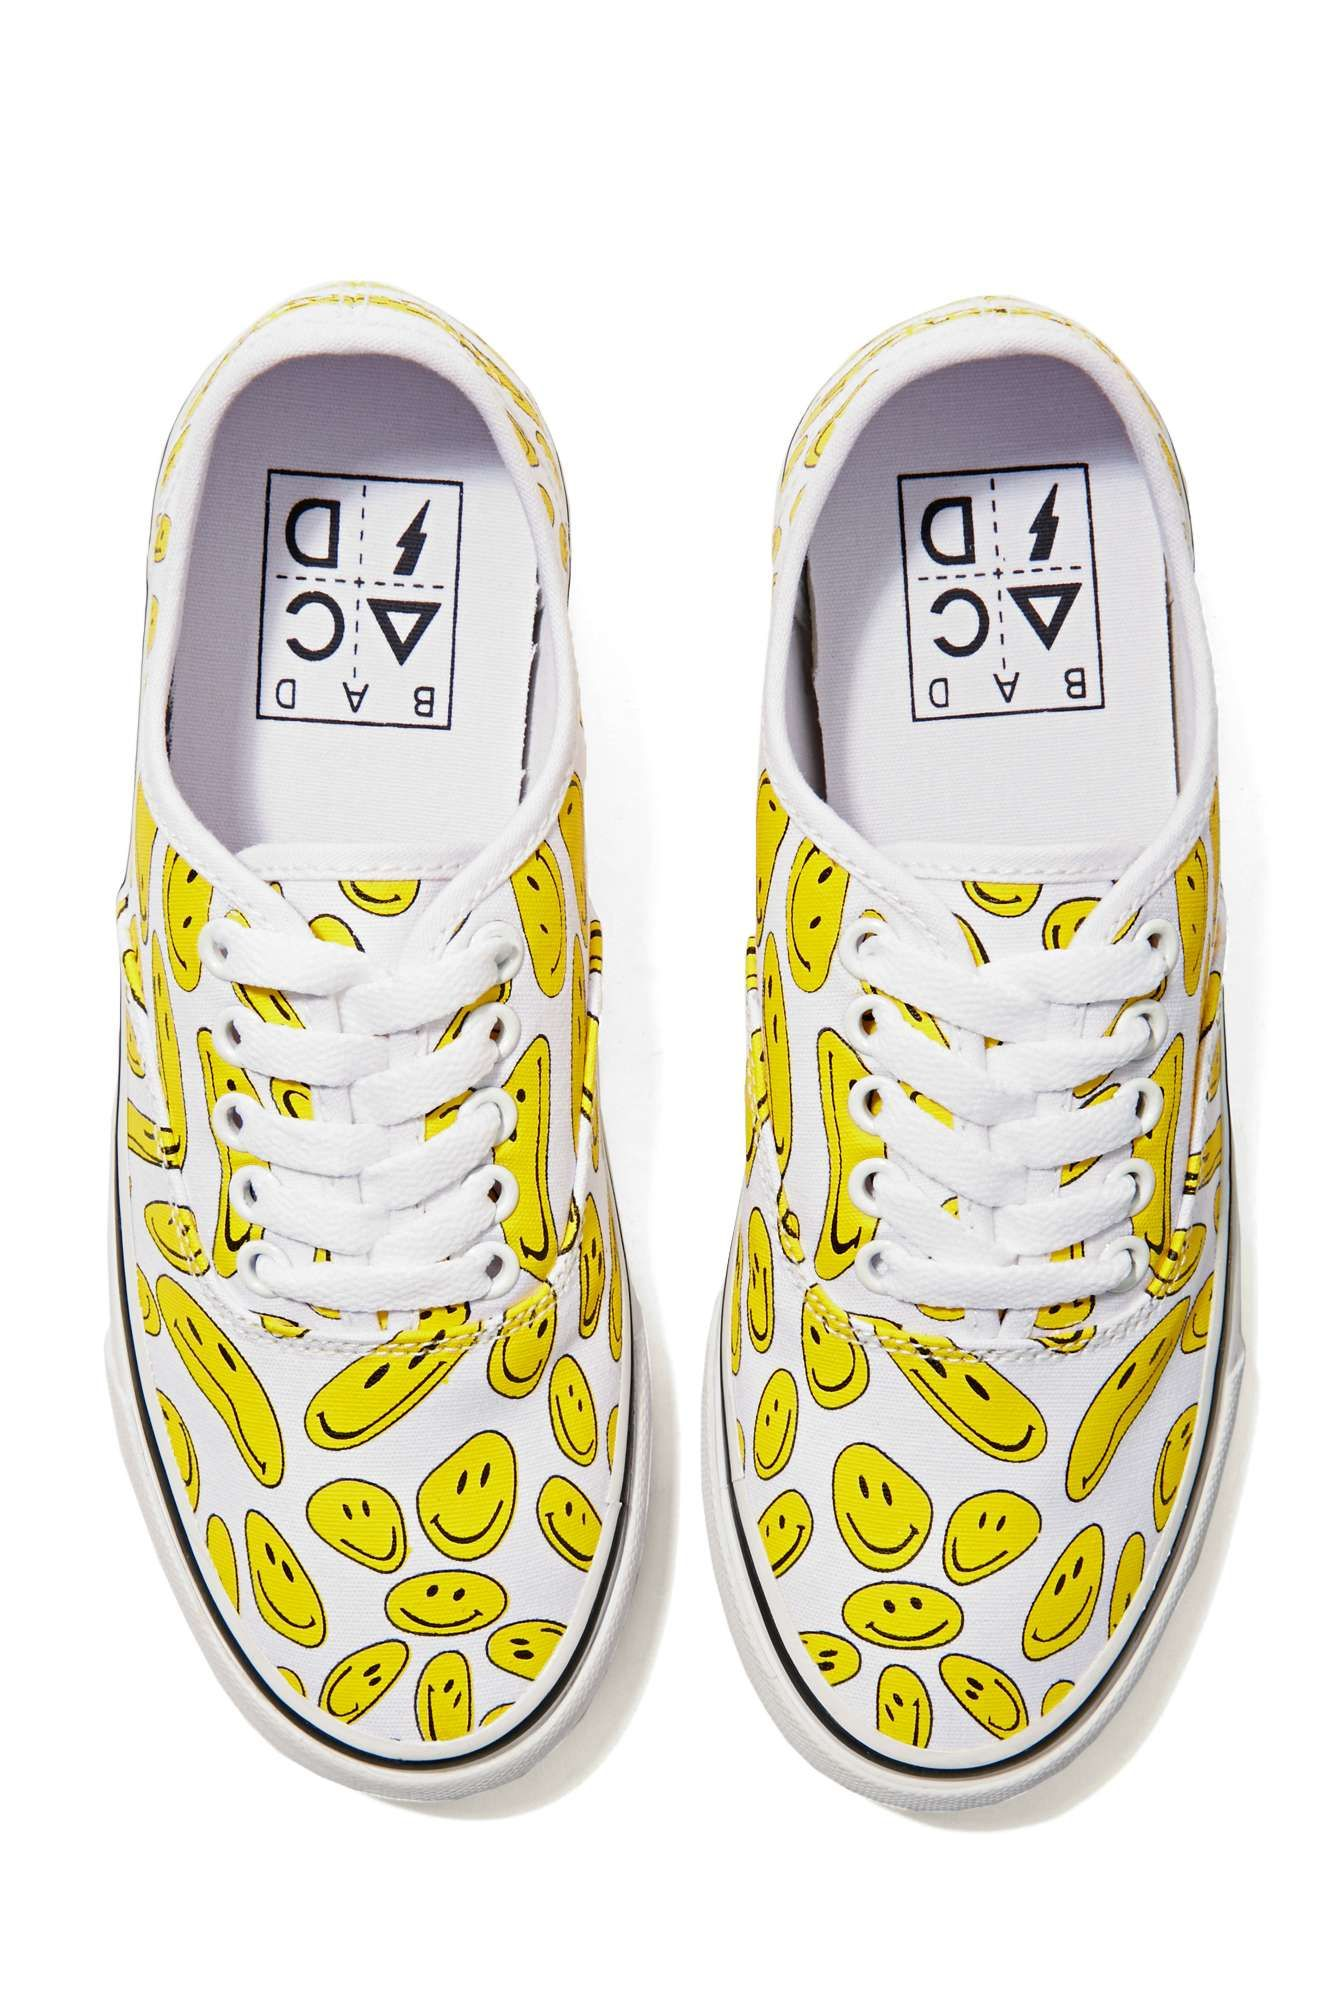 Bad Shop 24 Bad Acid Smiley Sneakers Shop 24 Hour Party People At Nasty Gal